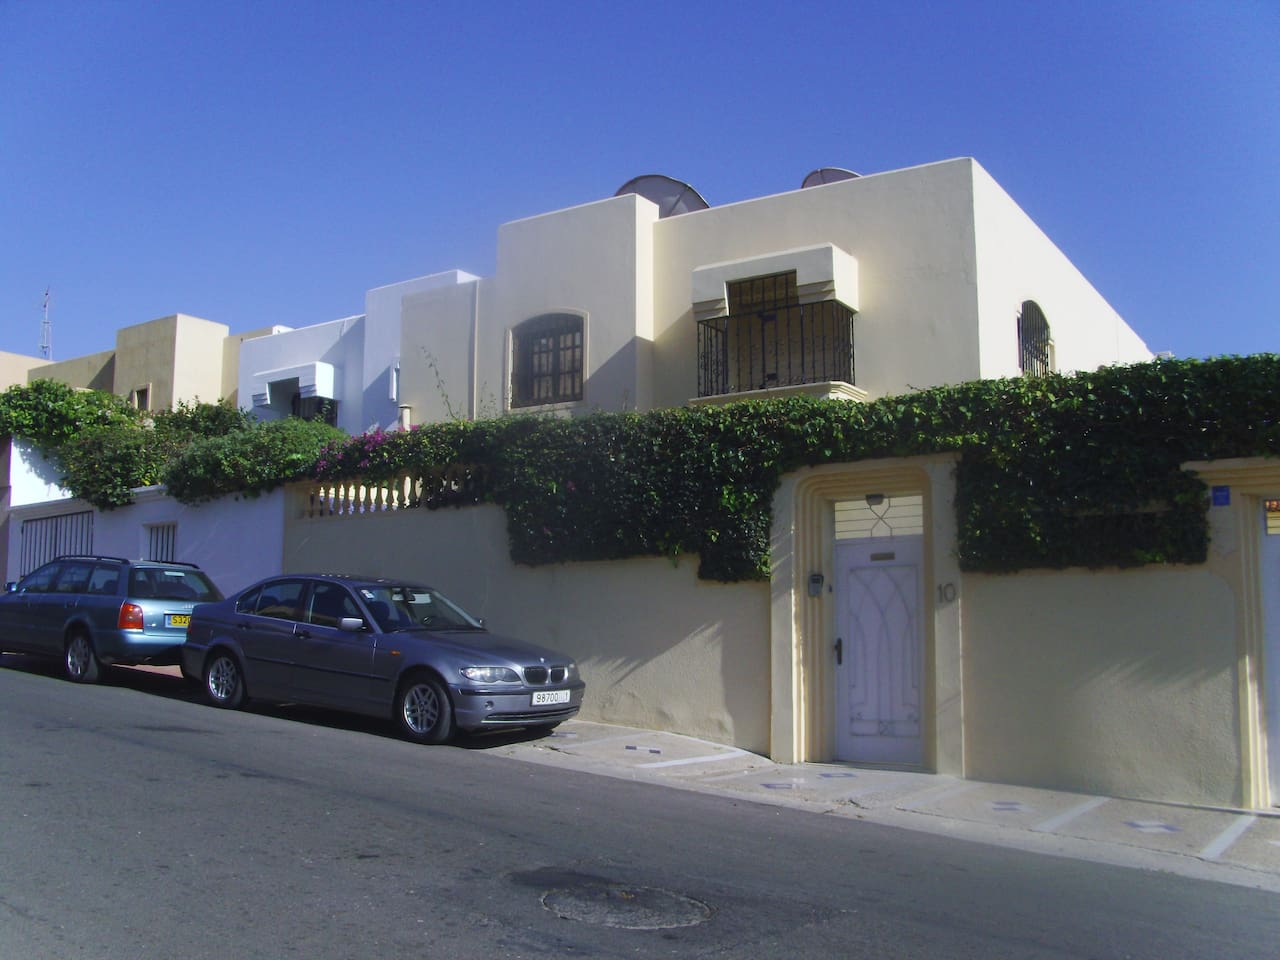 Outside view of the villa